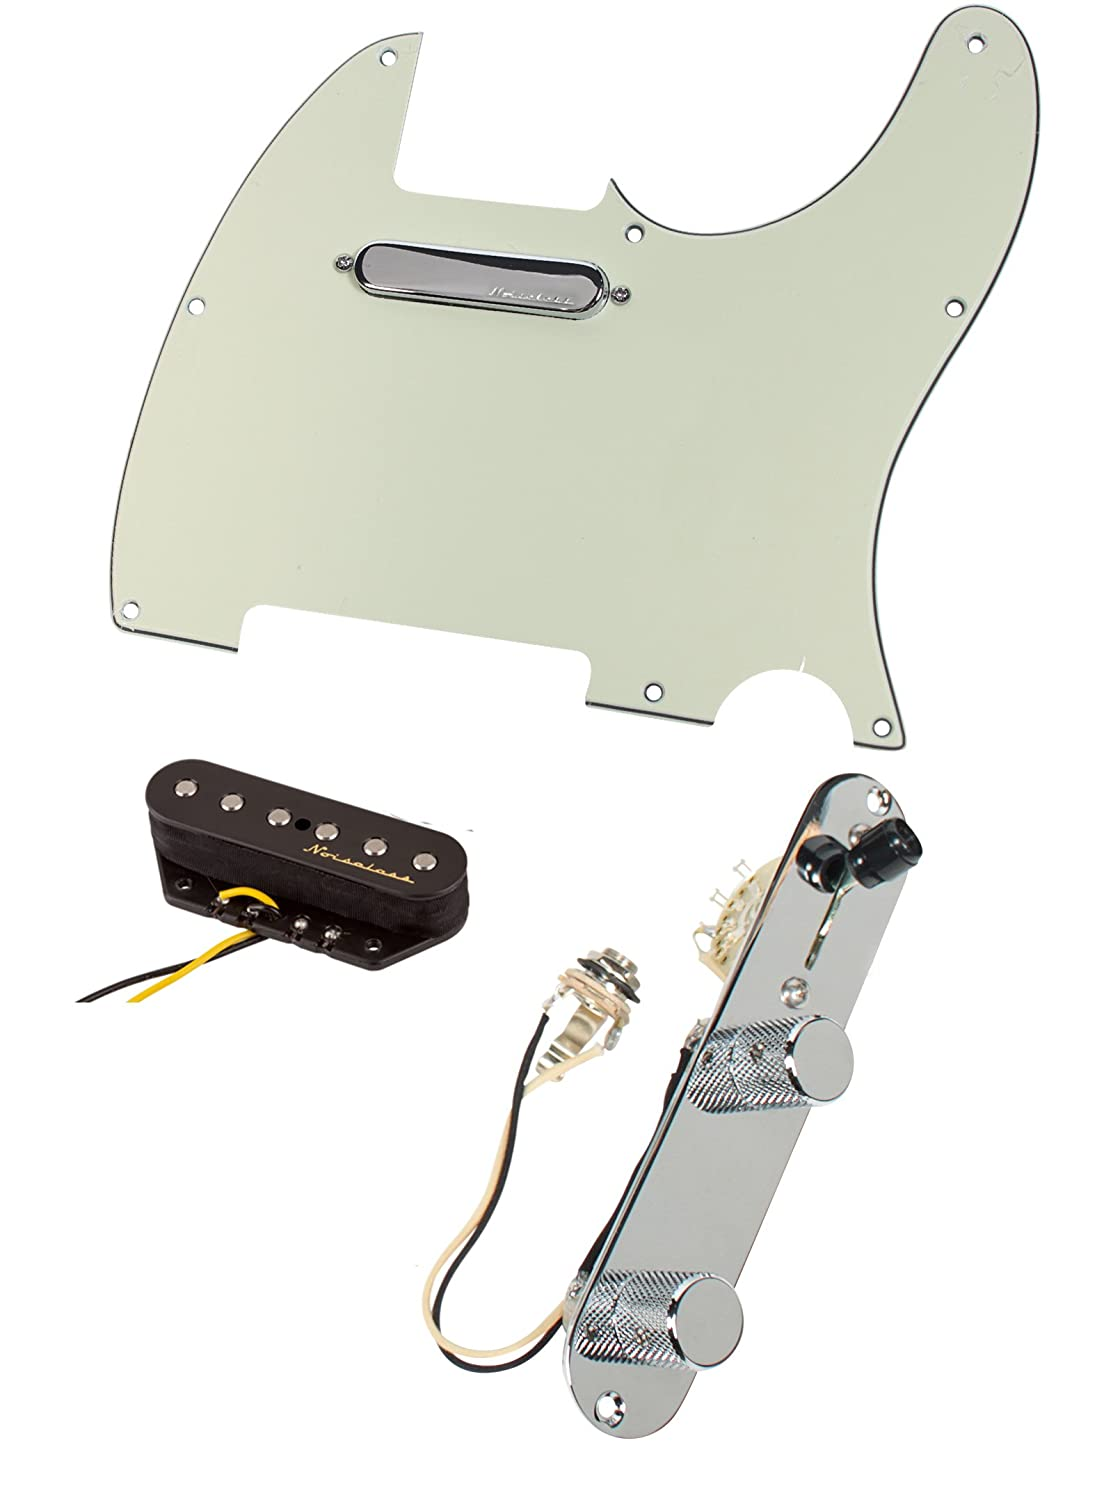 Fender Vintage Noiseless Pickups Wiring Diagram 47 Strat Sl1500 Amazon Com Tele Telecaster Loaded Pre Wired Pickguard